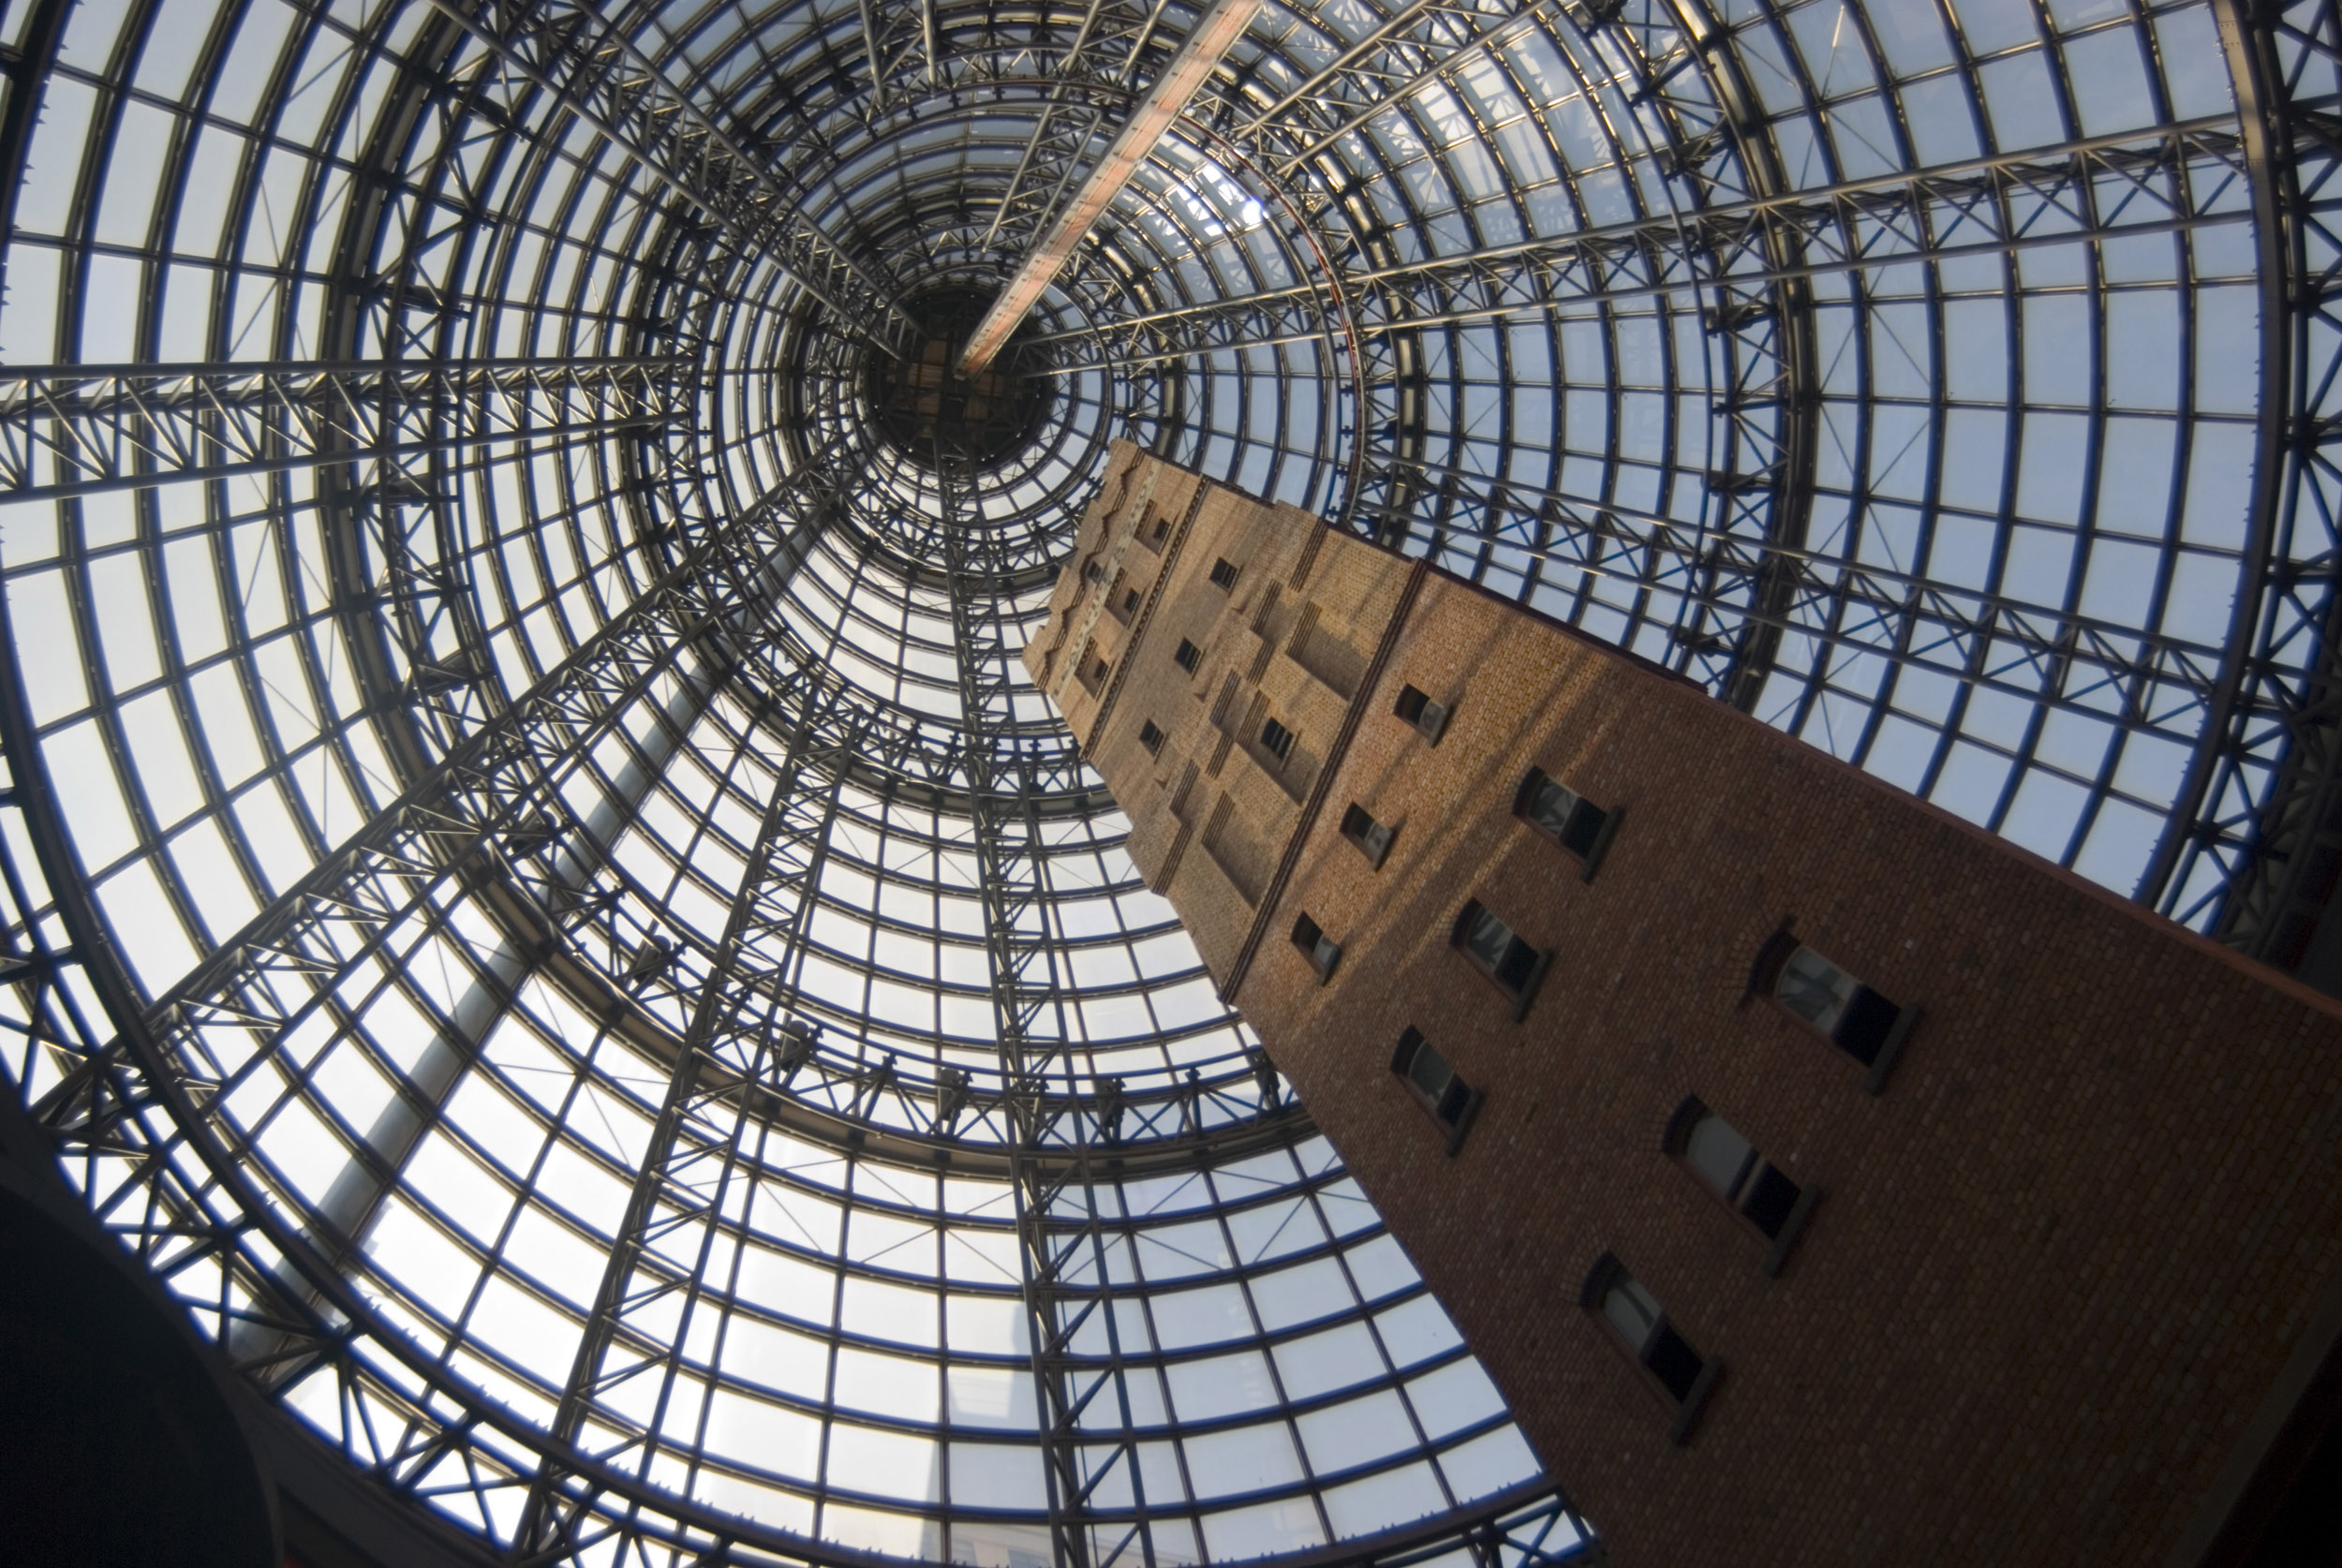 A vertical, mesmerizing view of the glass cone, an architectural masterpiece in Melbourne Central shoppung centre, Australia.